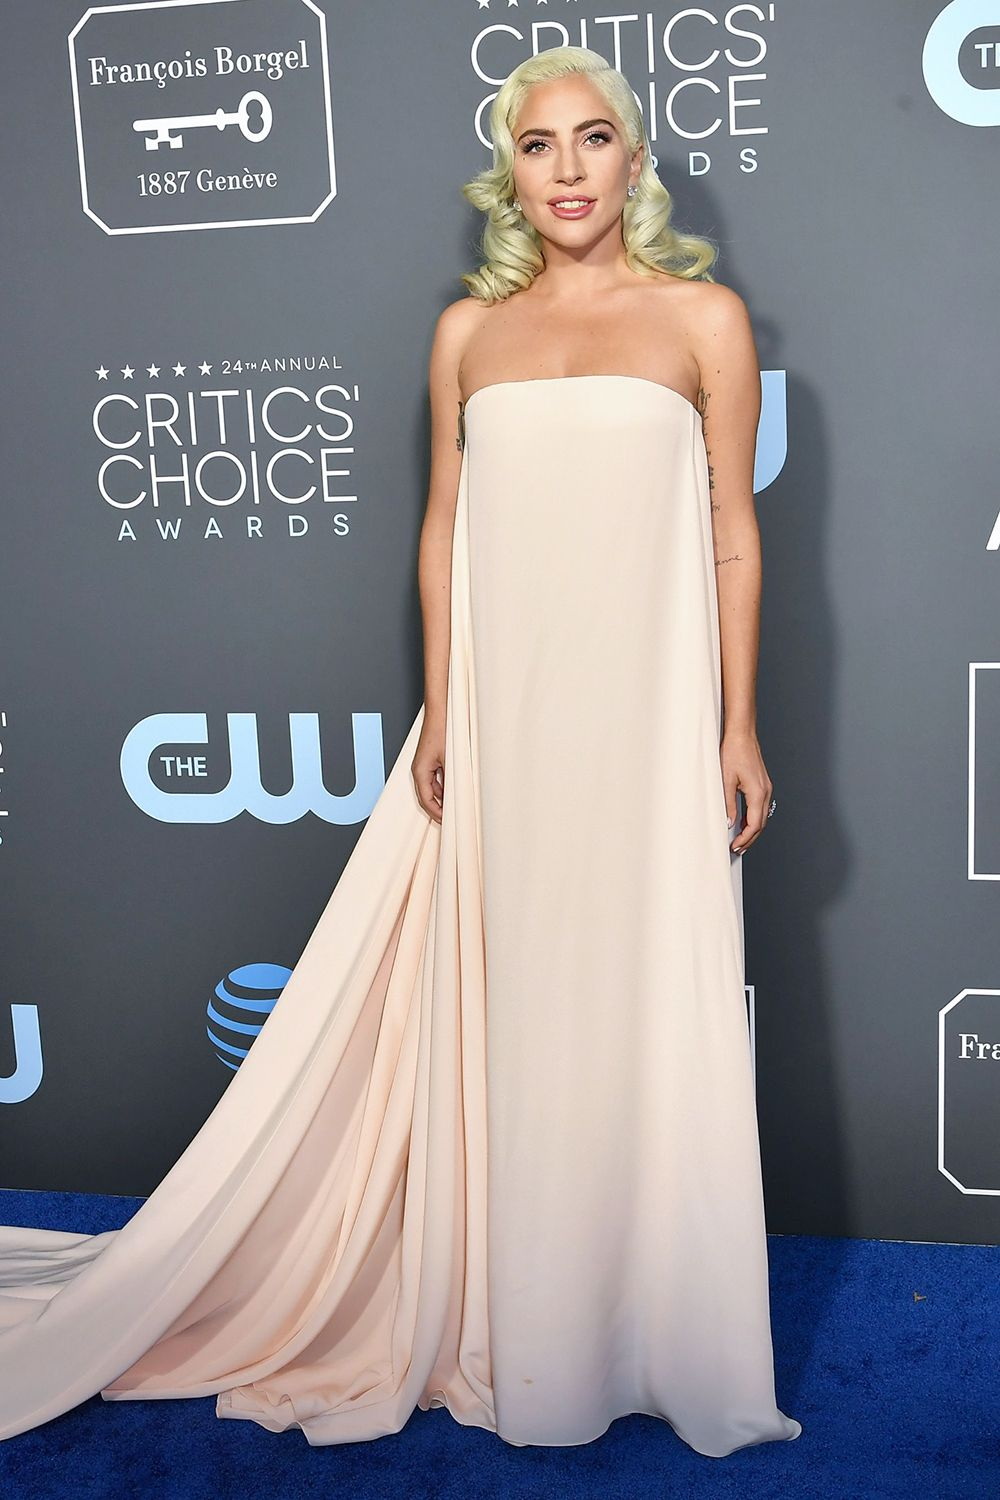 Critics' Choice Awards' Best Dressed 2019: See Fab Red Carpet Fashion